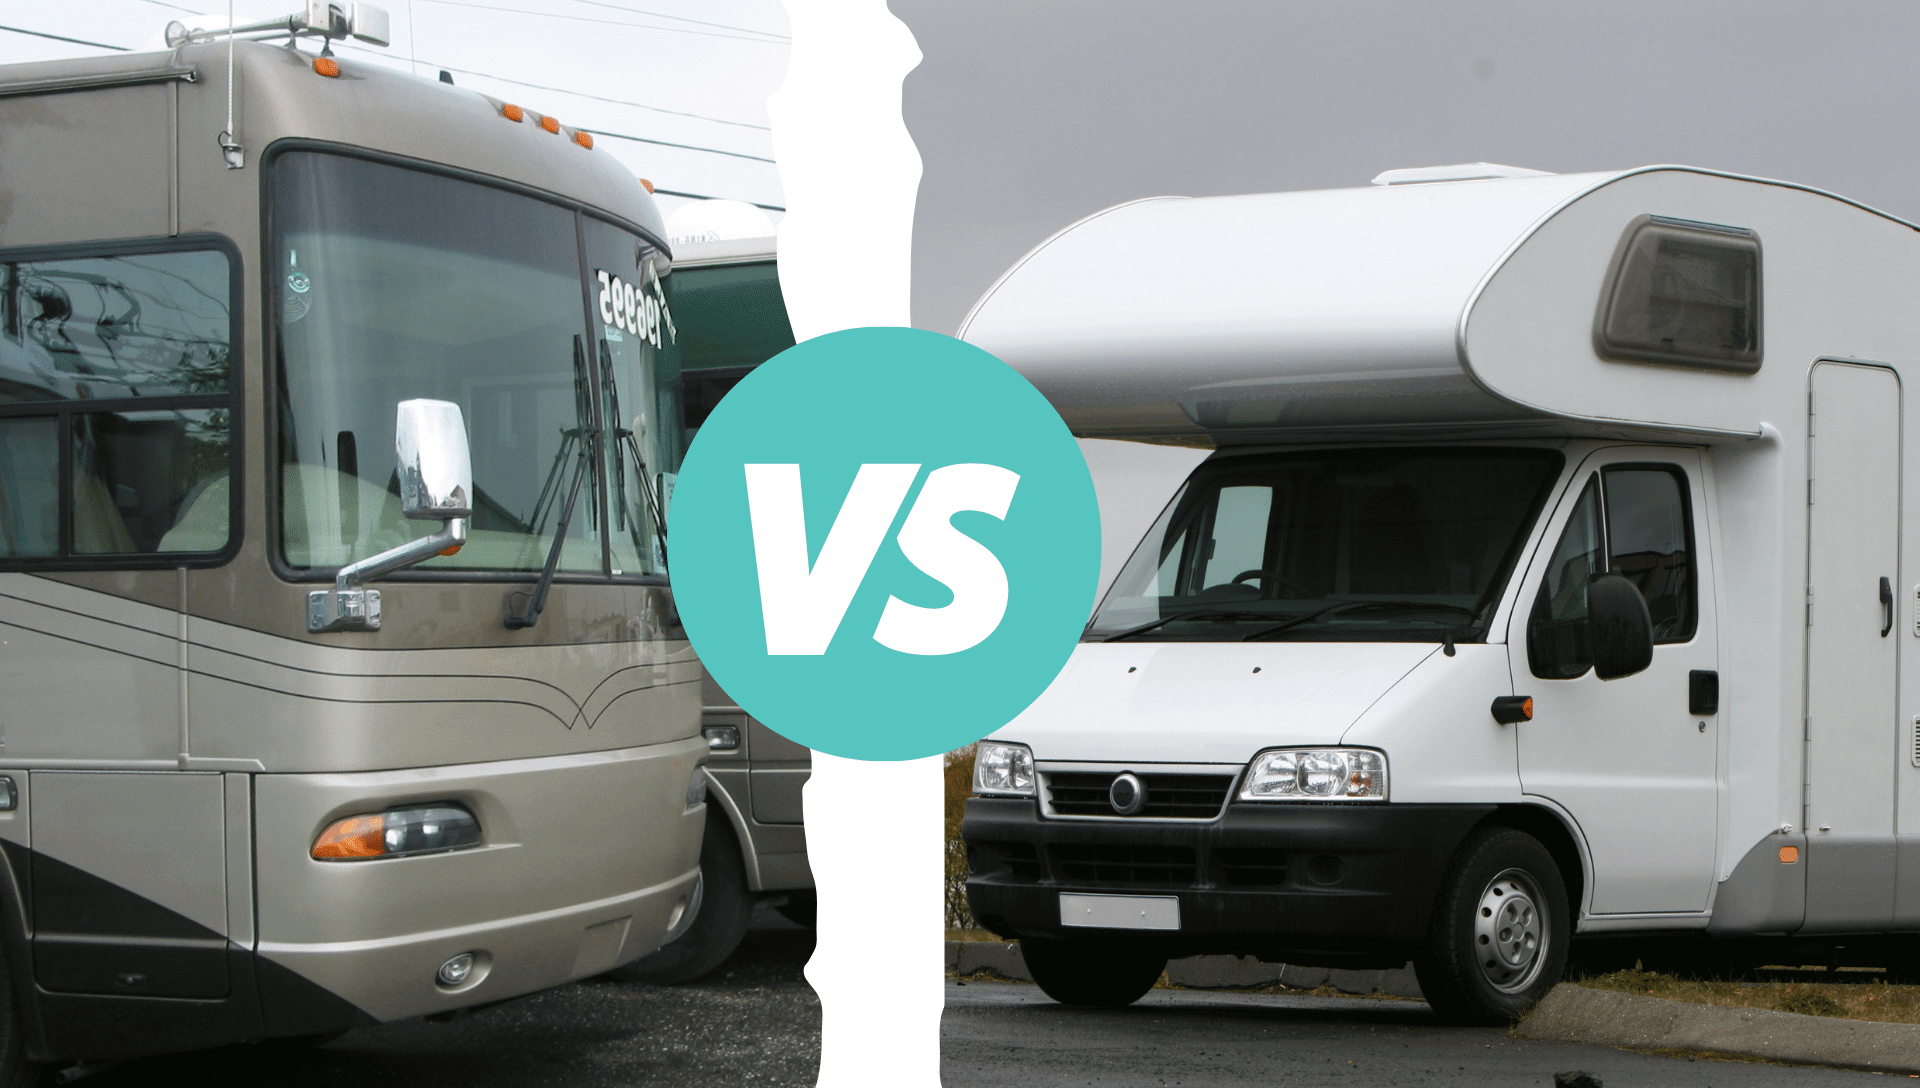 On the left is a Class A Motorhome and on the right is a Class C motorhome to showcase Class A vs. Class C differences.